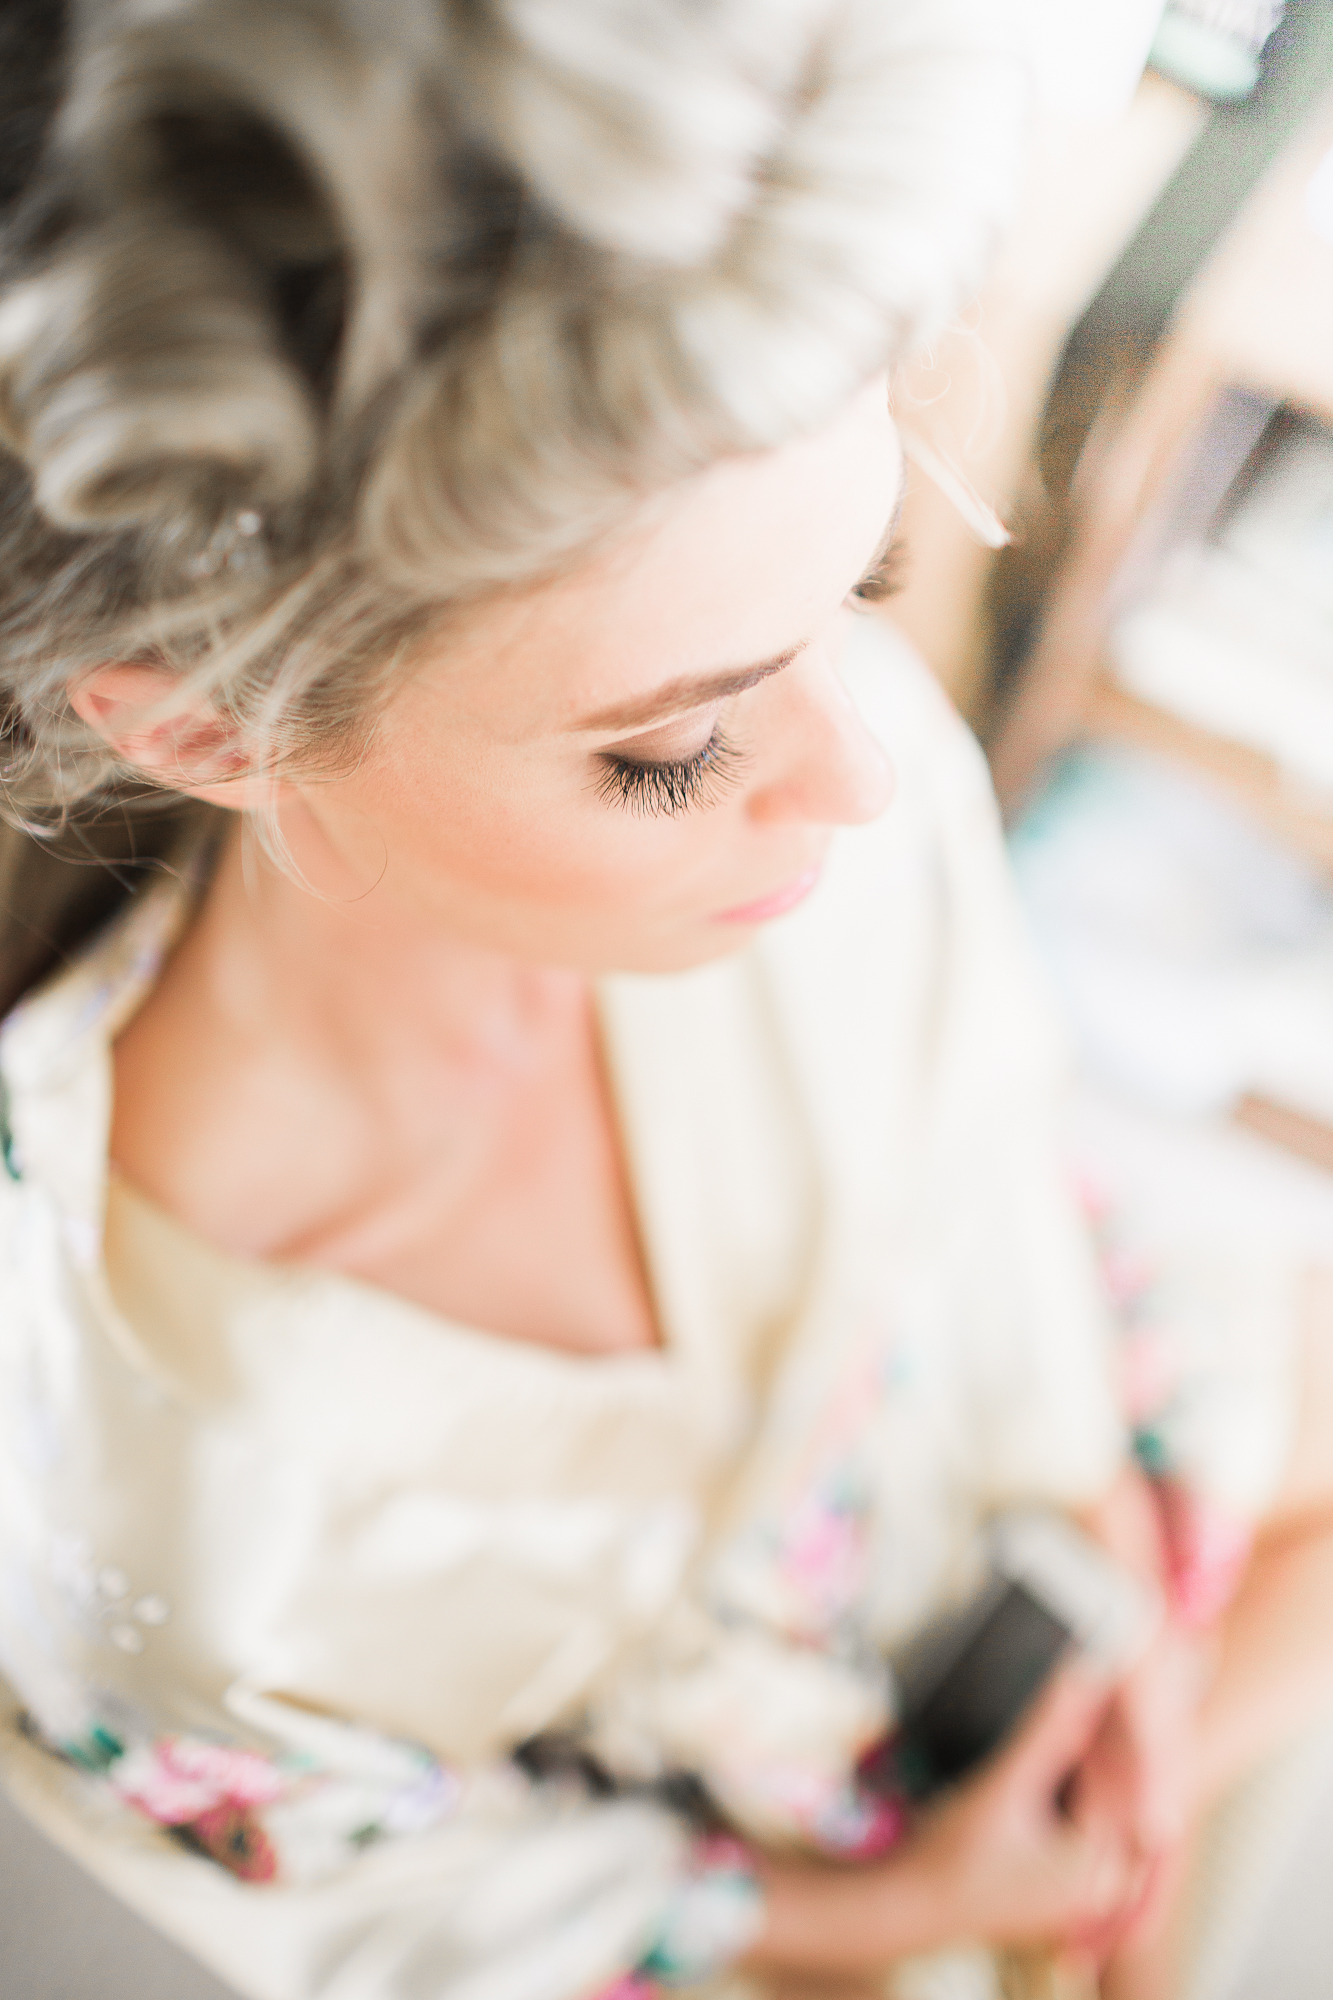 Such a beautiful bride who hardly needed any make-up at all.